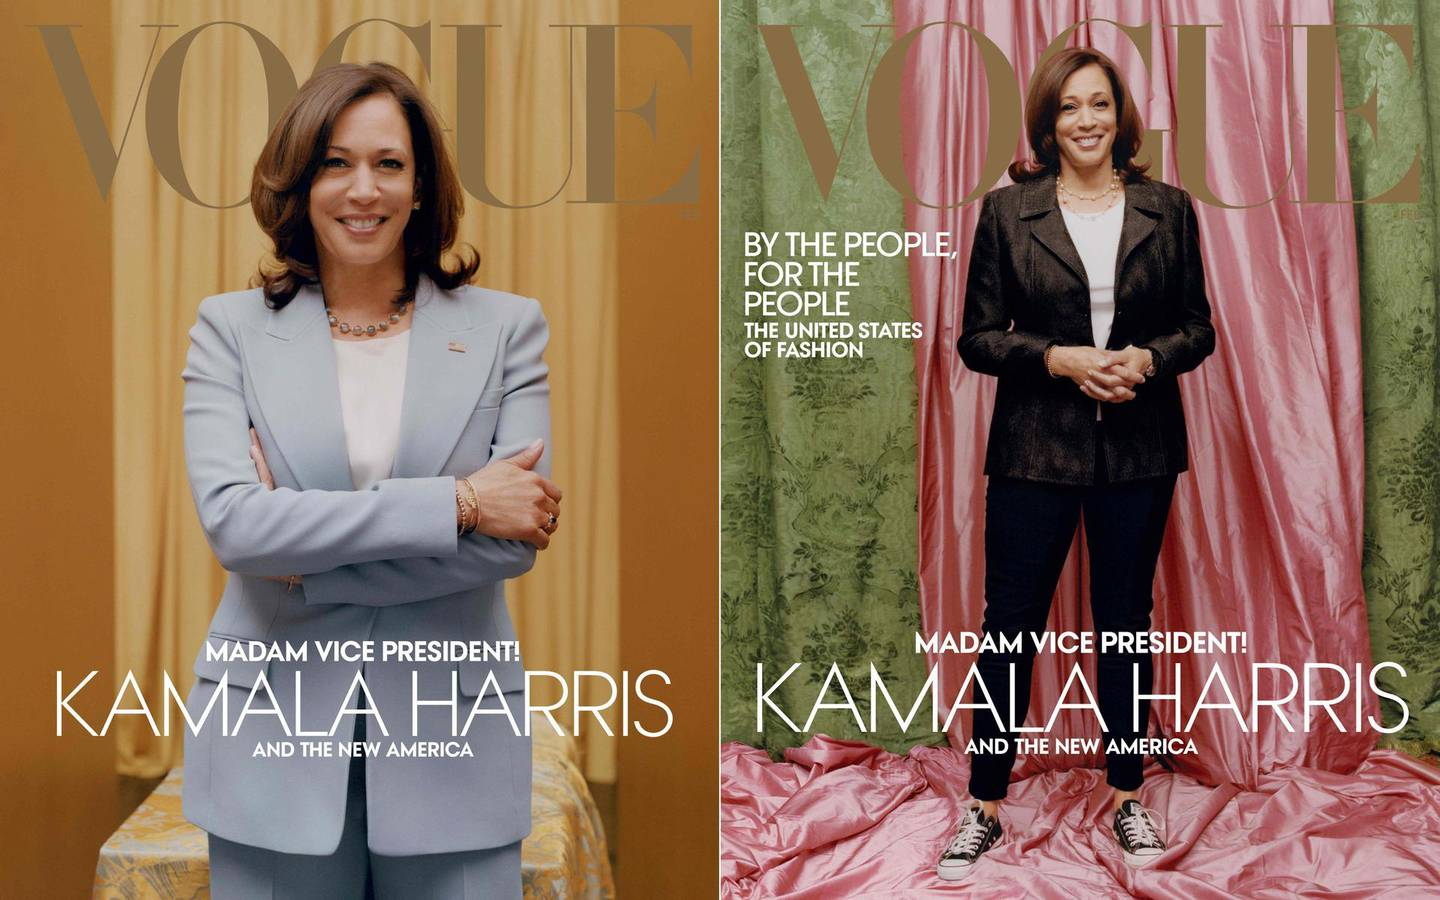 """(COMBO) This combination of pictures created on January 12, 2021 shows two handout photo obtained on January 12, 2021 courtesy of Vogue, of US Vice President-elect Kamala Harris in a Michael Kors Collection suit on the February 2021 cover of Vogue magazine(L) and against colors inspired by those of her Howard university sorority, Alpha Kappa Alpha, Vice President–elect Kamala Harris(R) as she wears a Donald Deal jacket and Converse sneakers on the February 2021 cover of Vogue magazine.  A Vogue cover photo of Vice-President-elect Kamala Harris dressed casually has sparked controversy with critics saying it diminishes her achievements, forcing editor Anna Wintour to defend the image on January 12, 2021. Criticism of the cover has spread on social media since it was released on January 10, 2021, with users insisting the portrait of Harris wearing sneakers is disrespectful to the first Black woman to be elected vice president.  A Vogue cover photo of Vice-President-elect Kamala Harris dressed casually has sparked controversy with critics saying it diminishes her achievements, forcing editor Anna Wintour to defend the image on January 12, 2021. Criticism of the cover has spread on social media since it was released on January 10, 2021, with users insisting the portrait of Harris wearing sneakers is disrespectful to the first Black woman to be elected vice president.   - RESTRICTED TO EDITORIAL USE - MANDATORY CREDIT """"AFP PHOTO /VOGUE/TYLER MITCHELL/VOGUE.COM/AMERICANVOGUE.COM/HANDOUT - NO MARKETING NO ADVERTISING CAMPAIGNS - DISTRIBUTED AS A SERVICE TO CLIENTS --- NO ARCHIVE ---  RESTRICTED TO EDITORIAL USE - MANDATORY CREDIT """"AFP PHOTO /VOGUE/TYLER MITCHELL/VOGUE.COM/AMERICANVOGUE.COM/HANDOUT - NO MARKETING NO ADVERTISING CAMPAIGNS - DISTRIBUTED AS A SERVICE TO CLIENTS --- NO ARCHIVE ---   / AFP / Vogue / Tyler MITCHELL / RESTRICTED TO EDITORIAL USE - MANDATORY CREDIT """"AFP PHOTO /VOGUE/TYLER MITCHELL/VOGUE.COM/AMERICANVOGUE.COM/HANDOUT - NO MARKETING NO ADVERTISING CAM"""